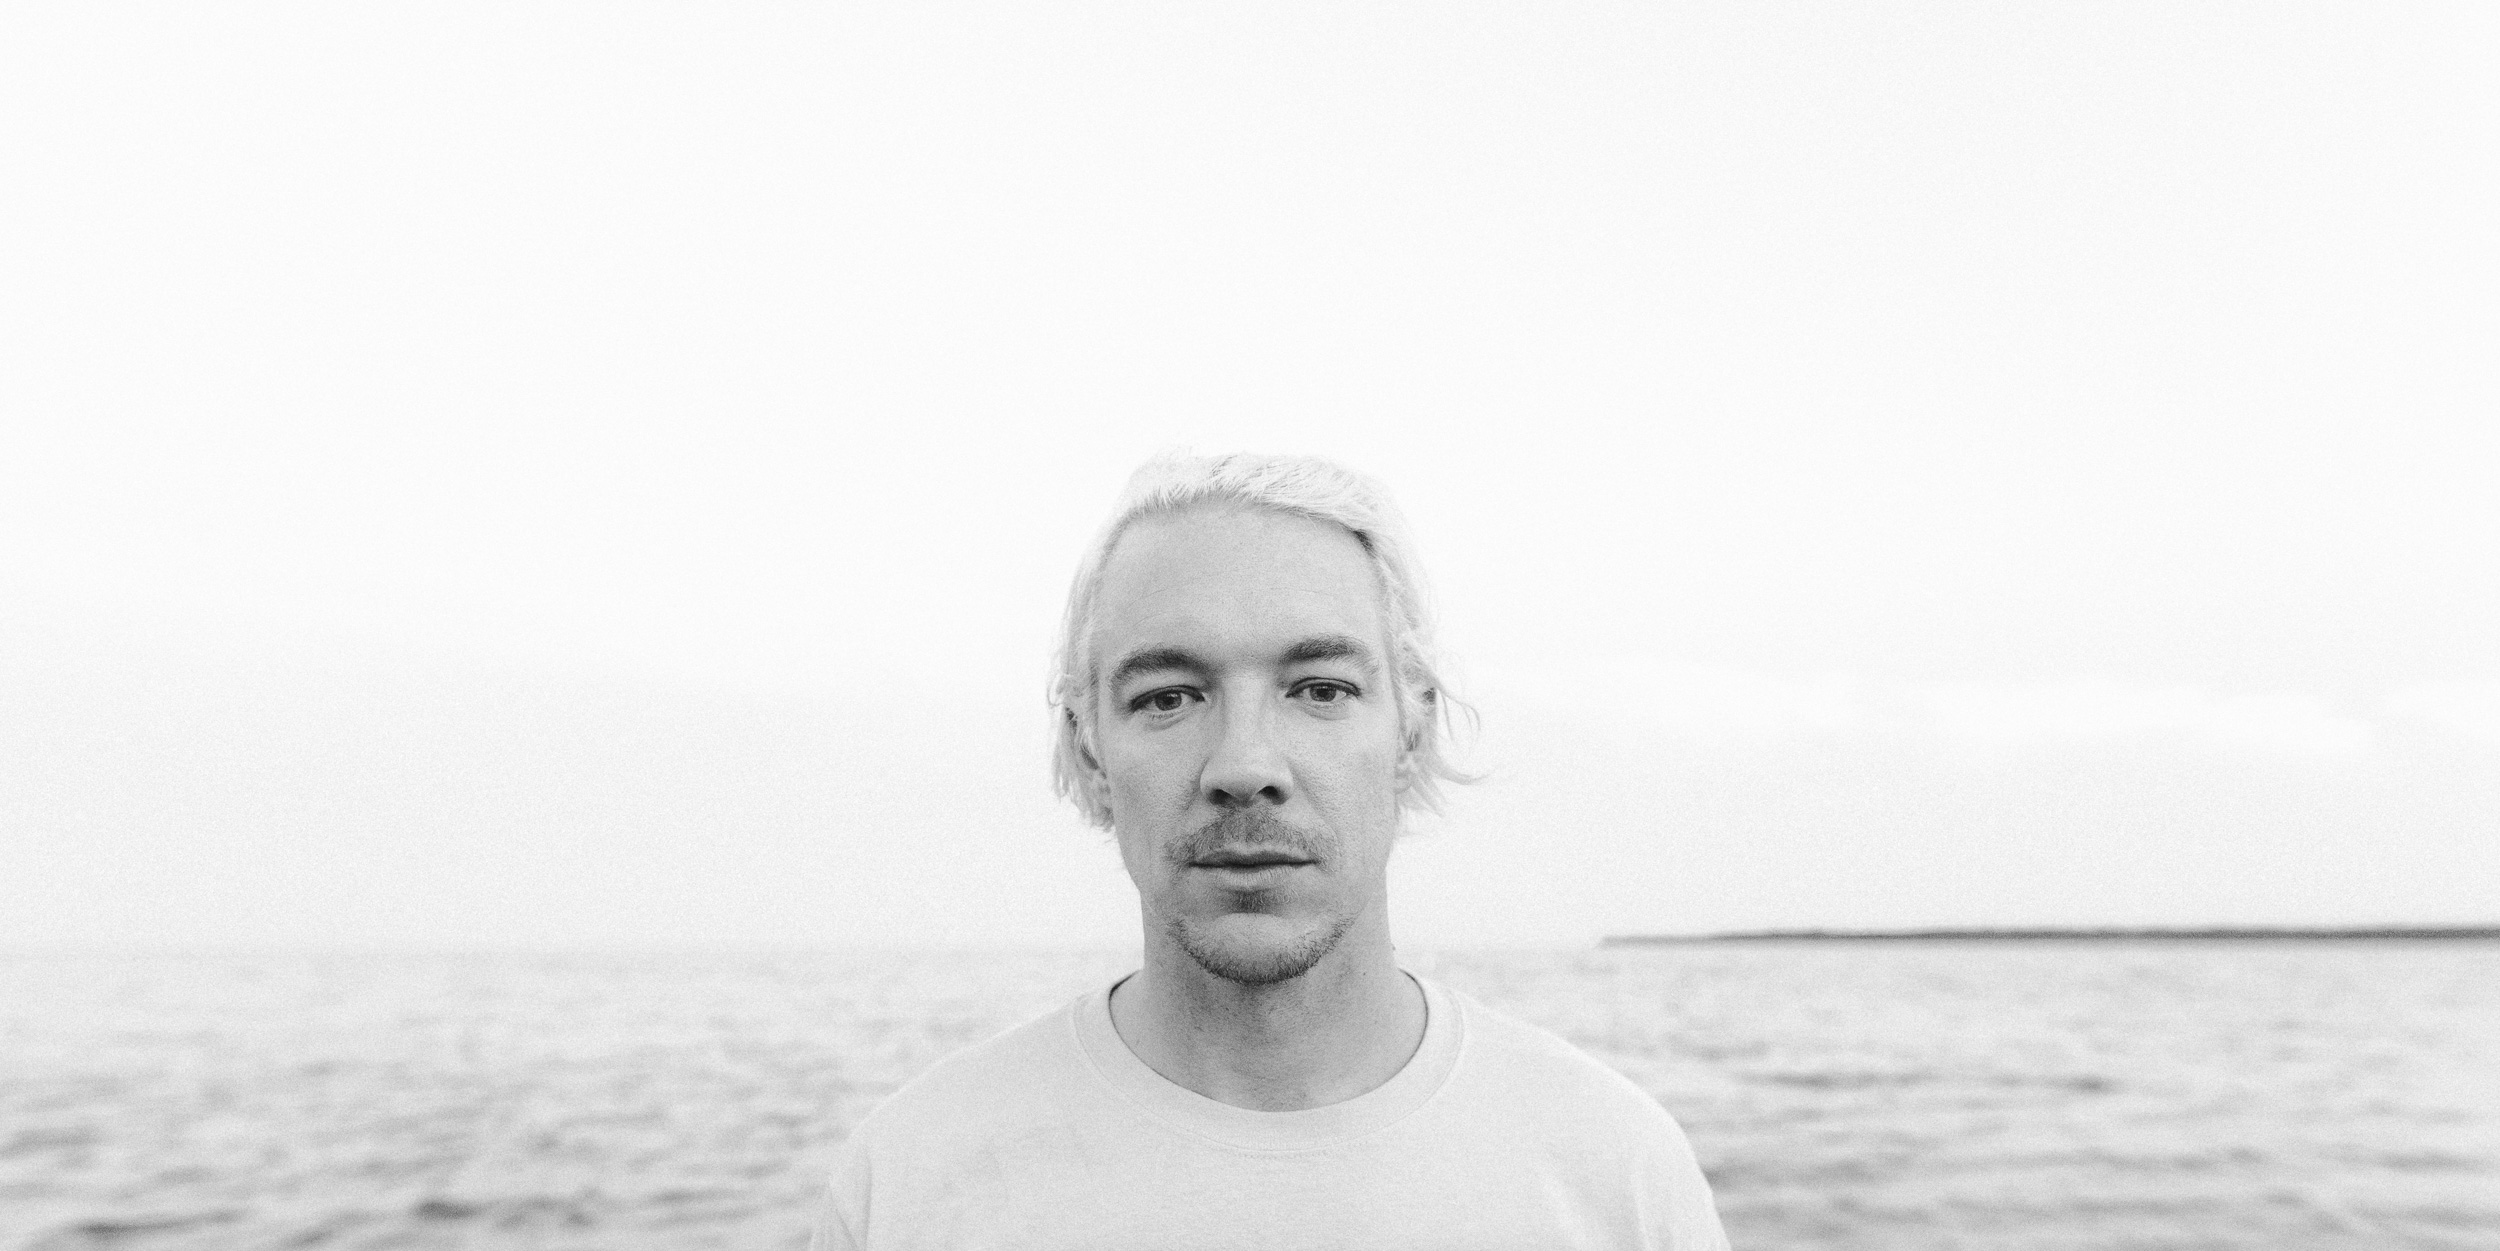 Portrait on the water with Diplo